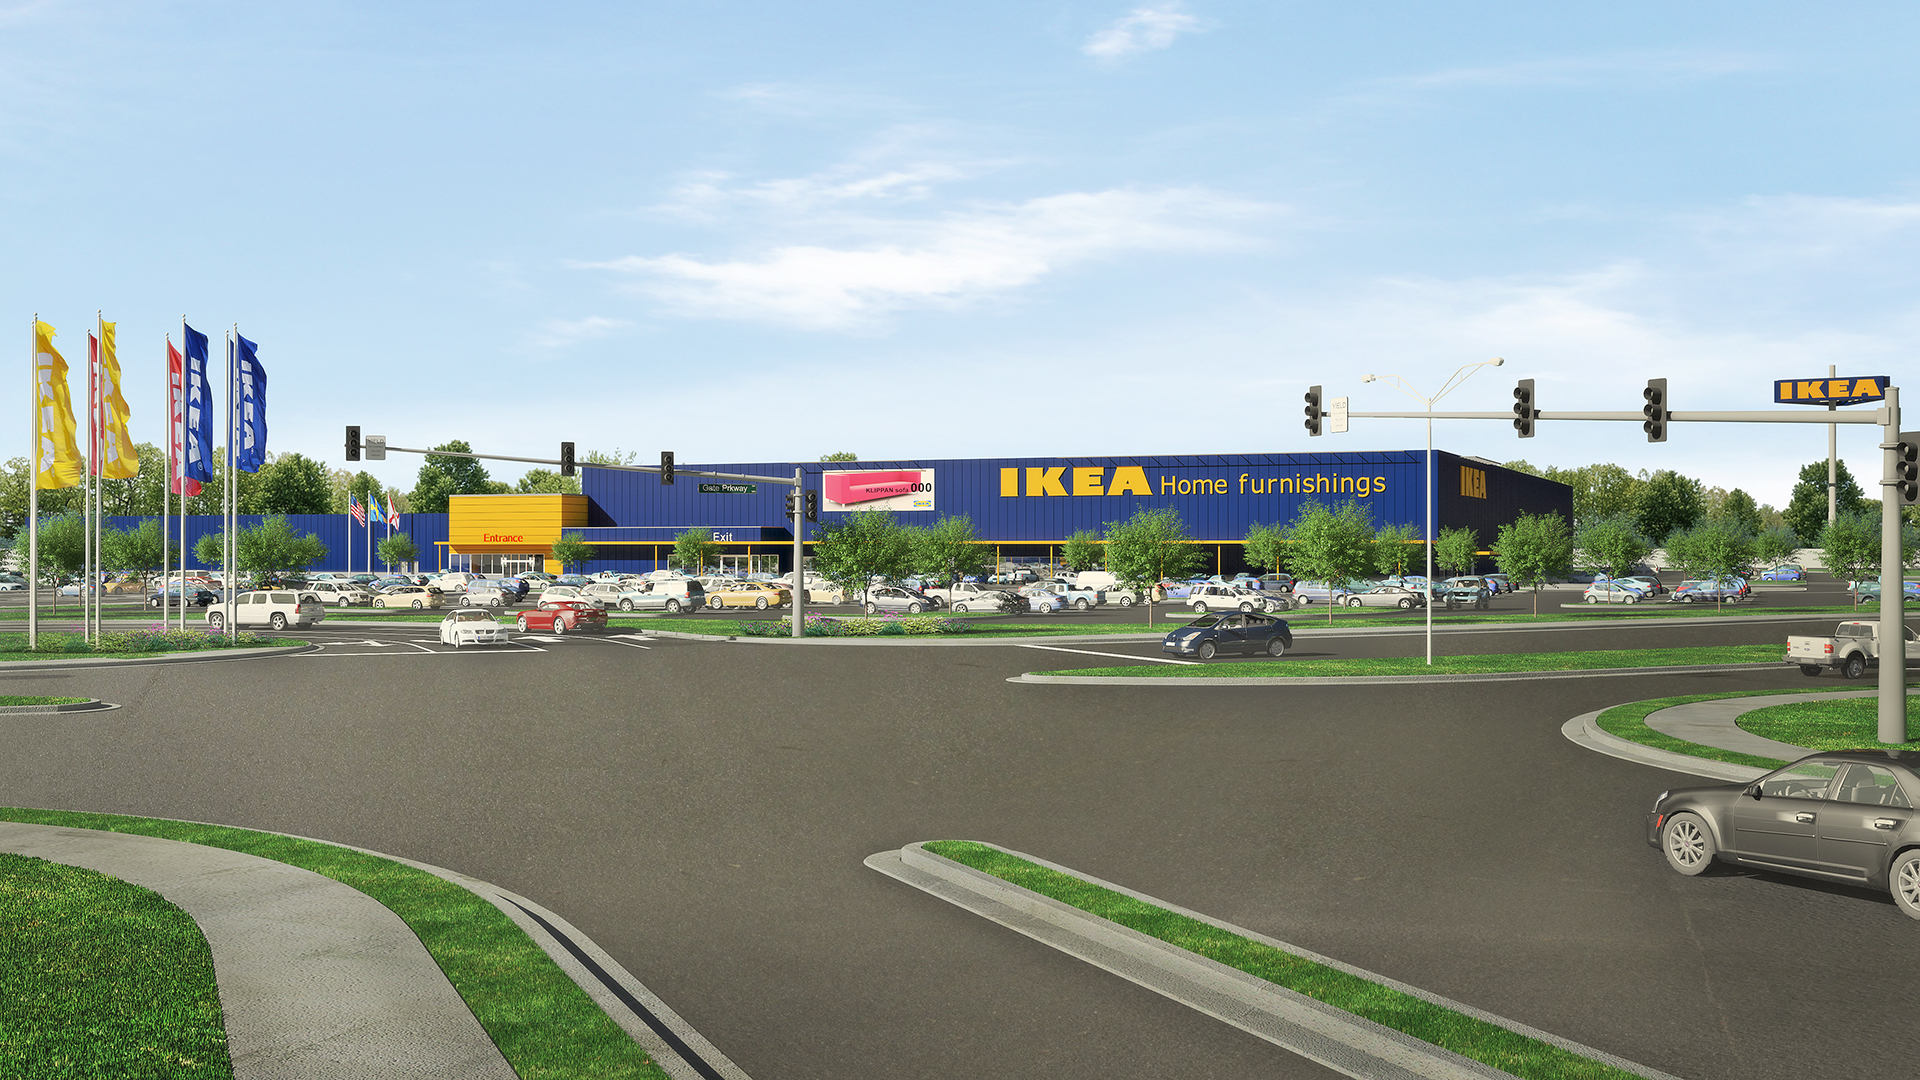 Swedish Home Furnishings Retailer Ikea Secures Contractors For Its Future Jacksonville Store Opening Fall 2017 As 5th Store In Fl Business Wire